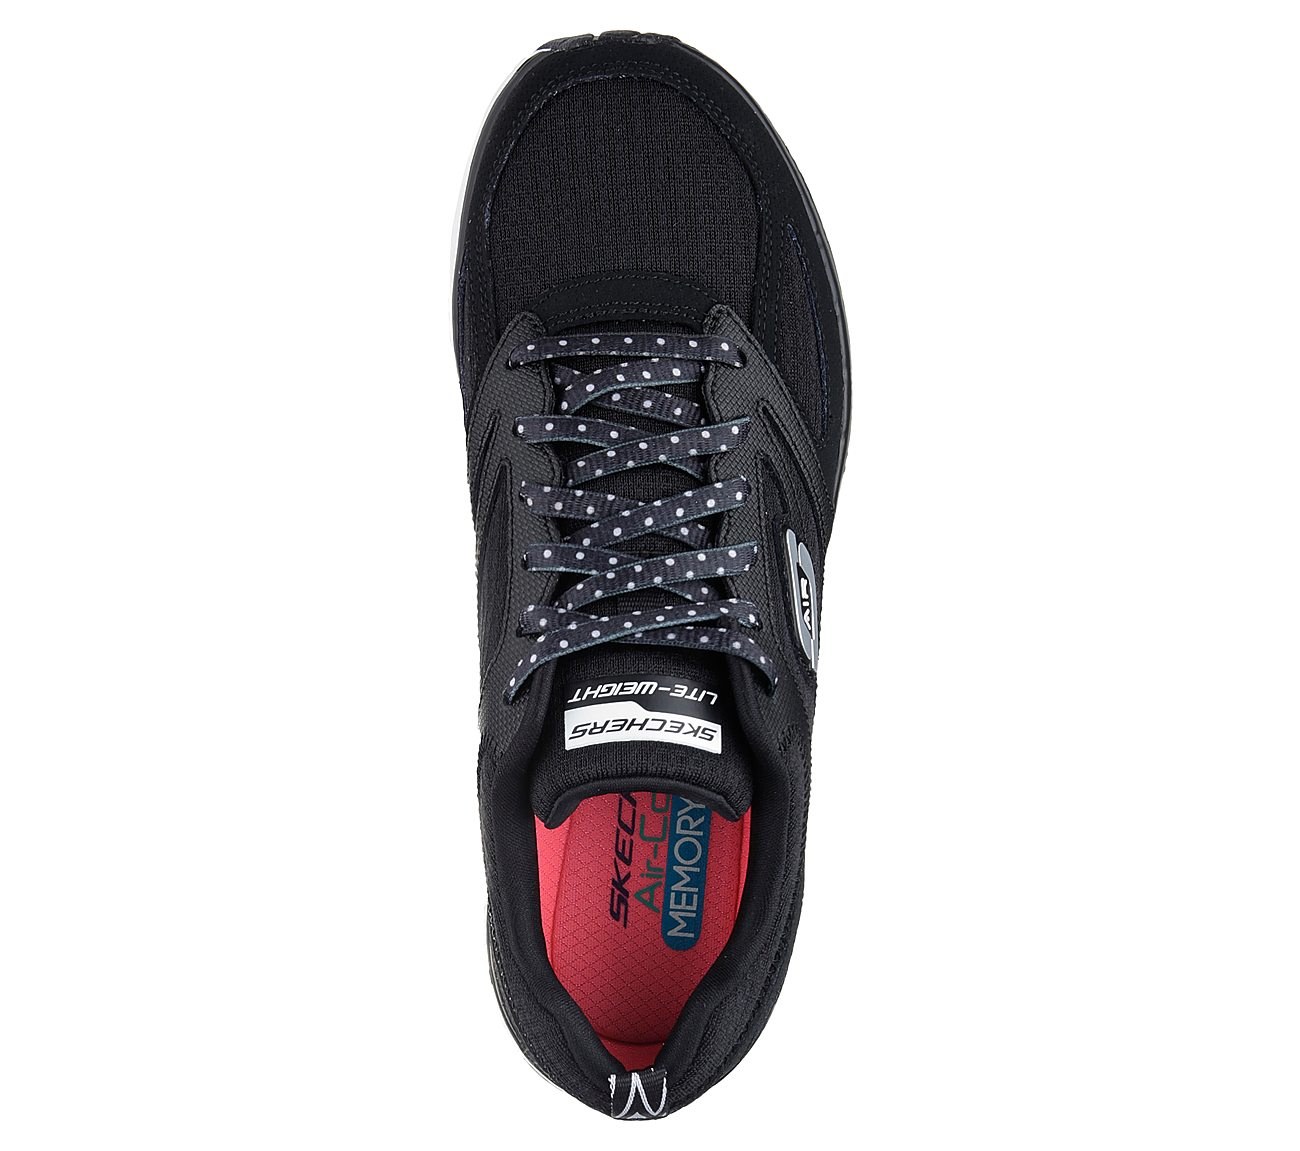 Buy SKECHERS Skech Air Infinity New Heights Skech Air Shoes zsbbs